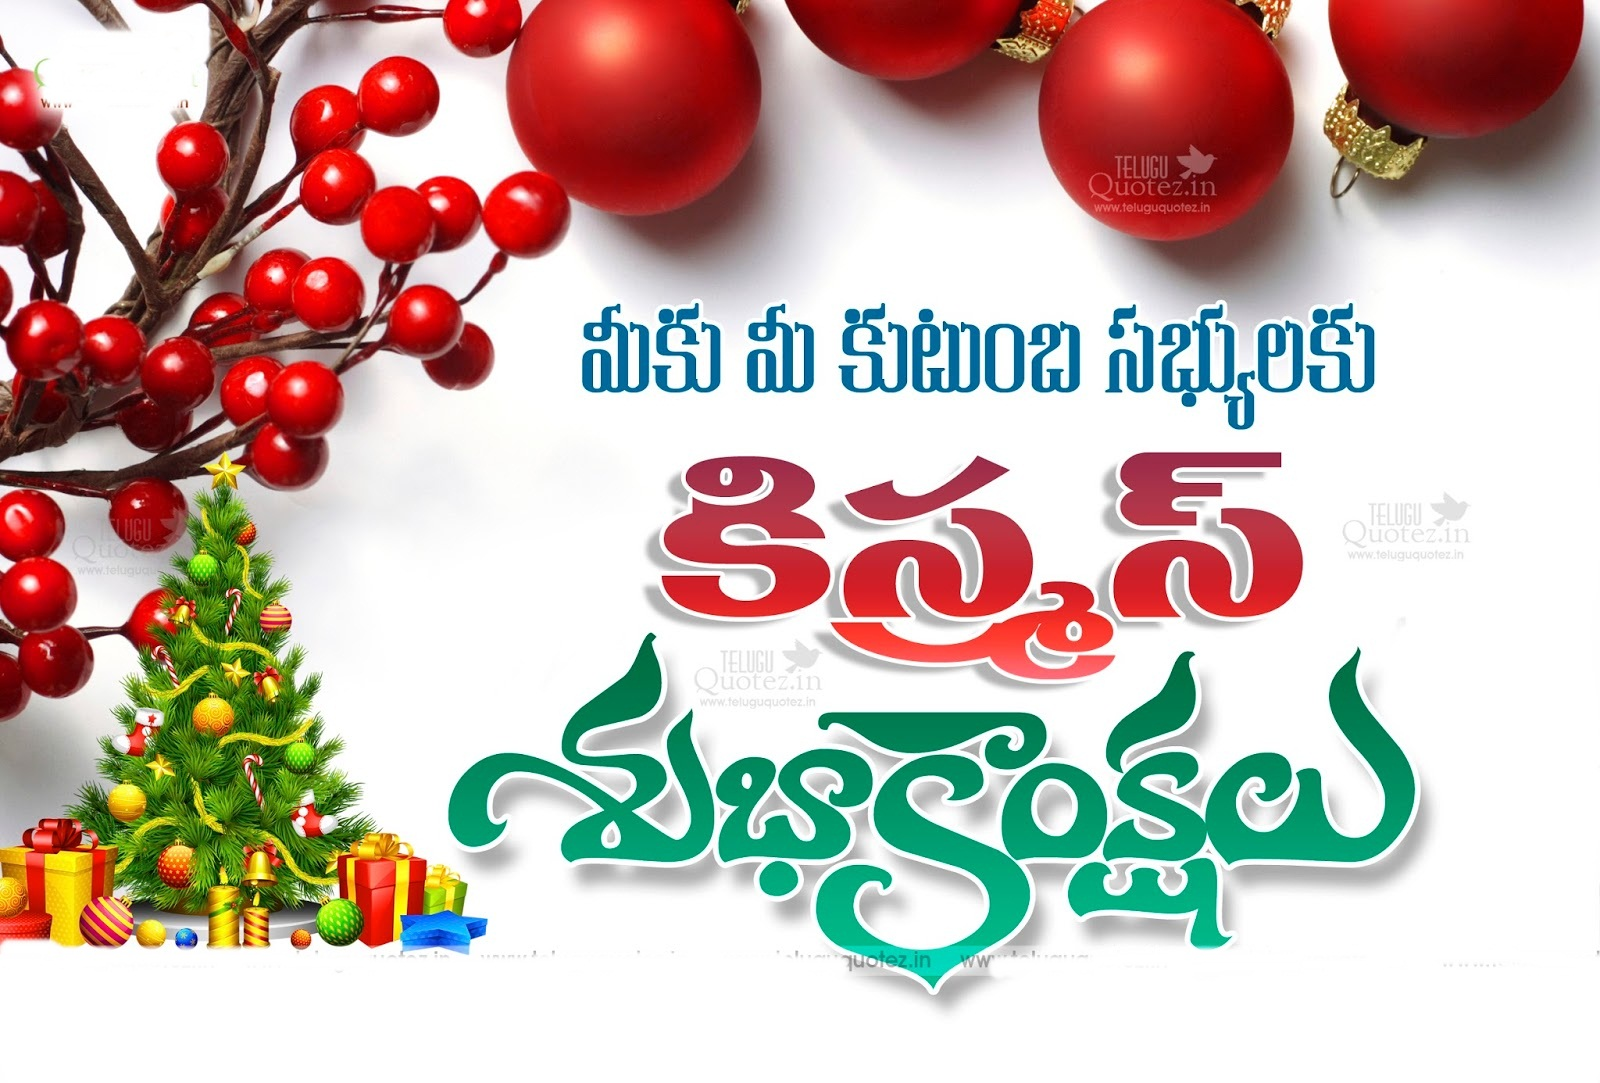 Merry Christmas Telugu Wallpapers Images Wishes Quotes ... Merry Christmas And Happy New Year 2017 Clip Art